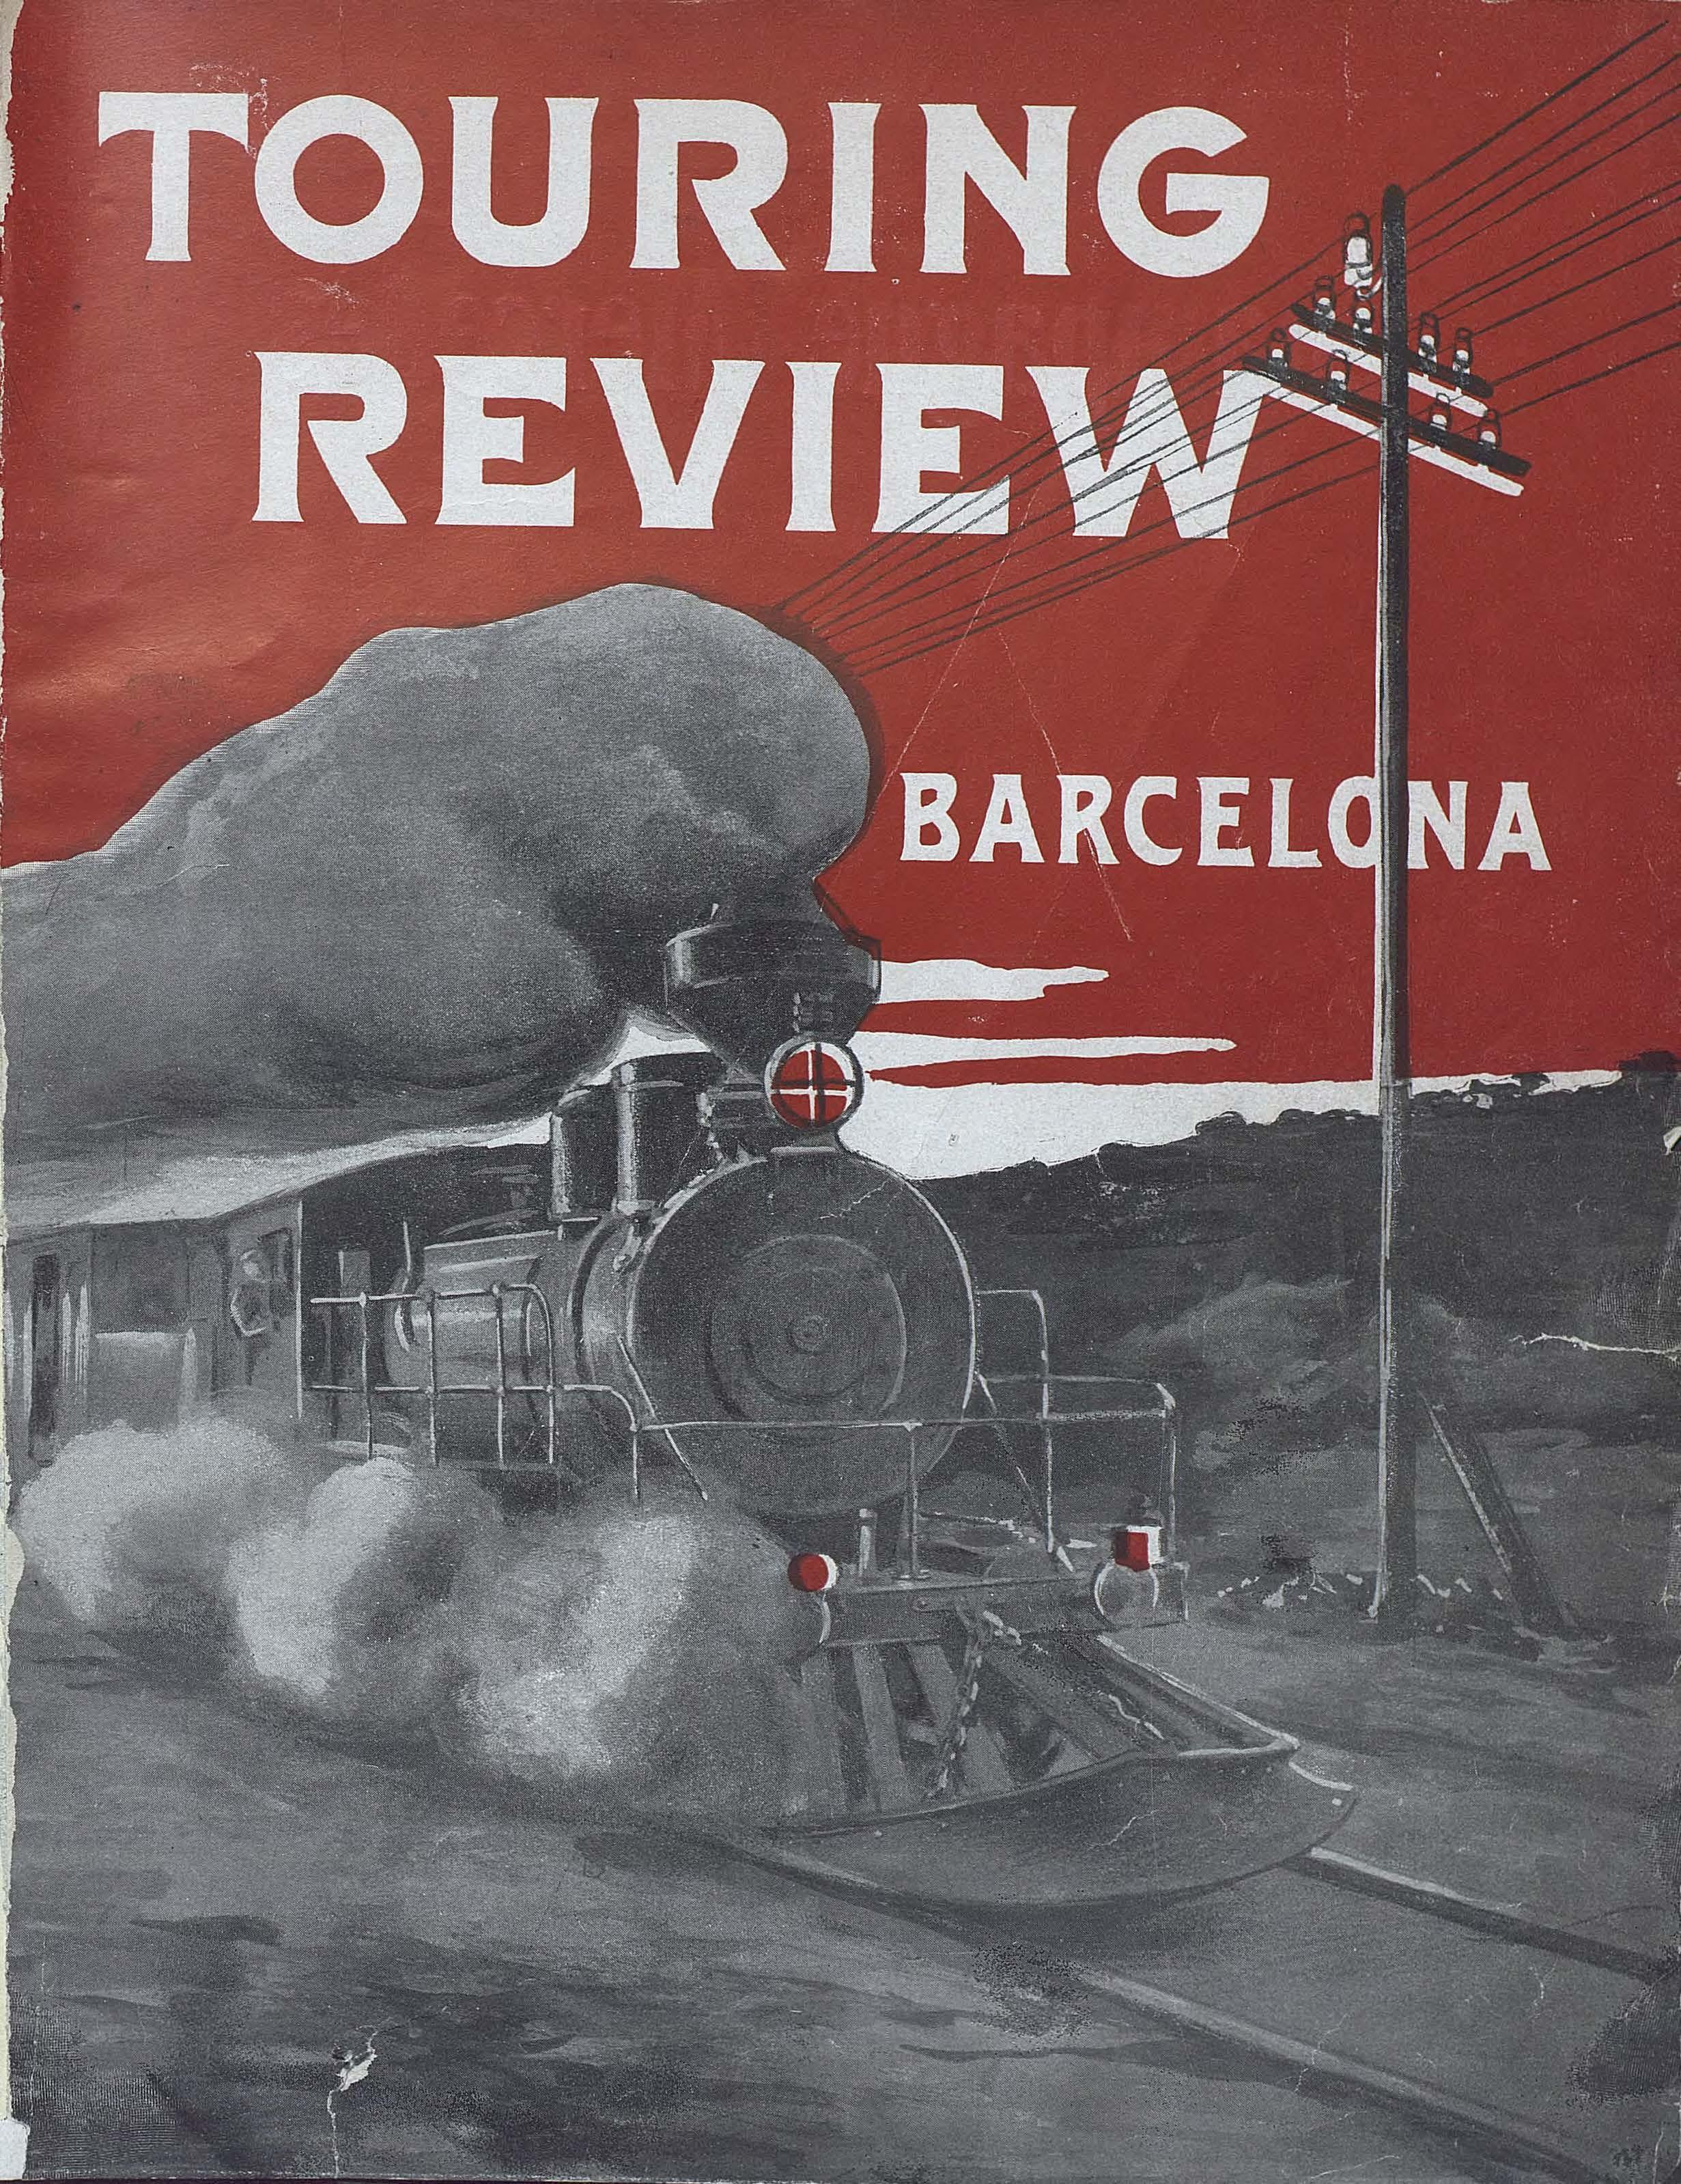 AHCB,  Periodicals Library, Touring review Barcelona, December 1910